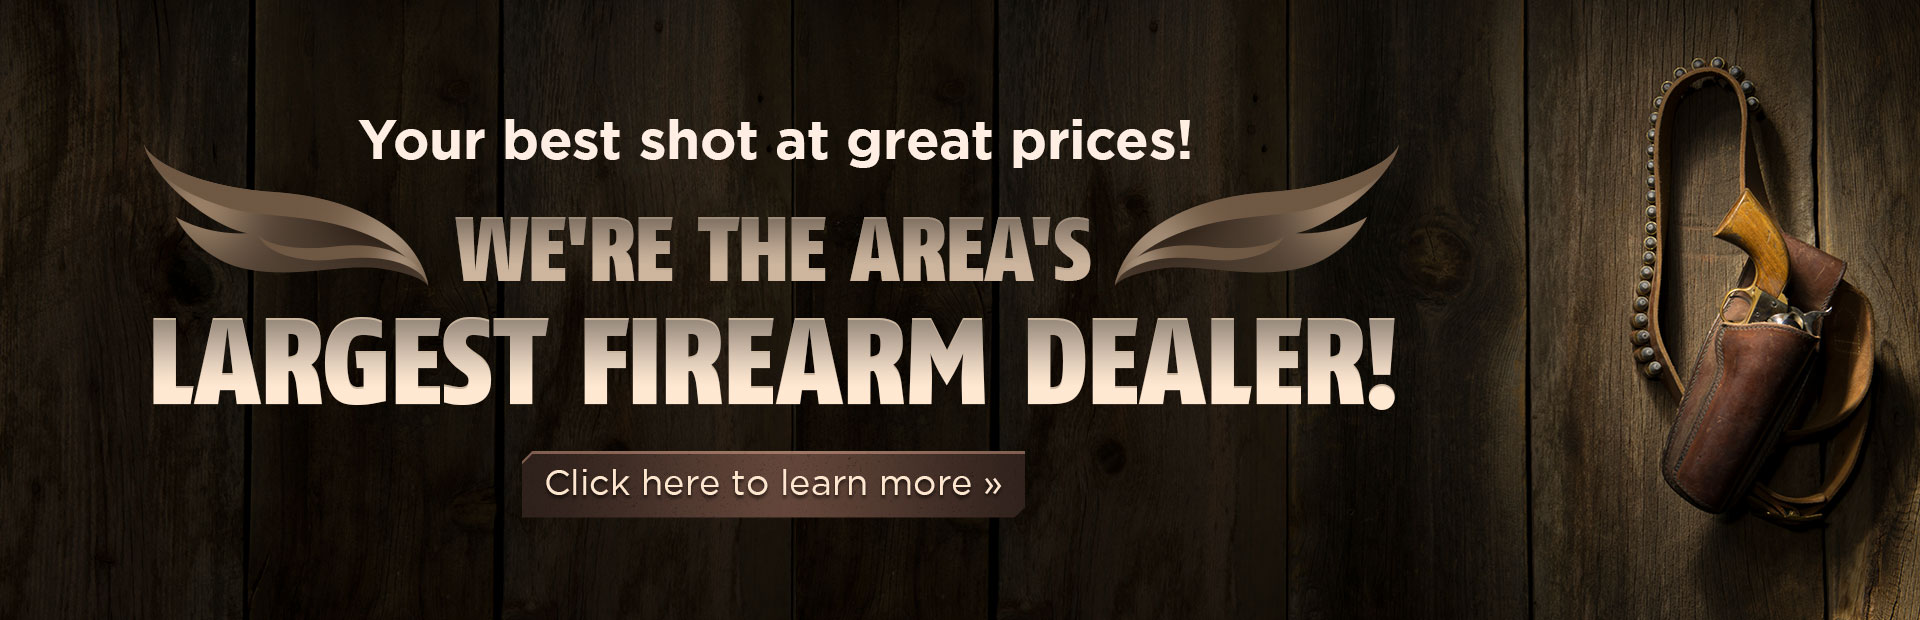 Leitz Sports Center Inc. is the area's largest firearm dealer! Click here to learn more.